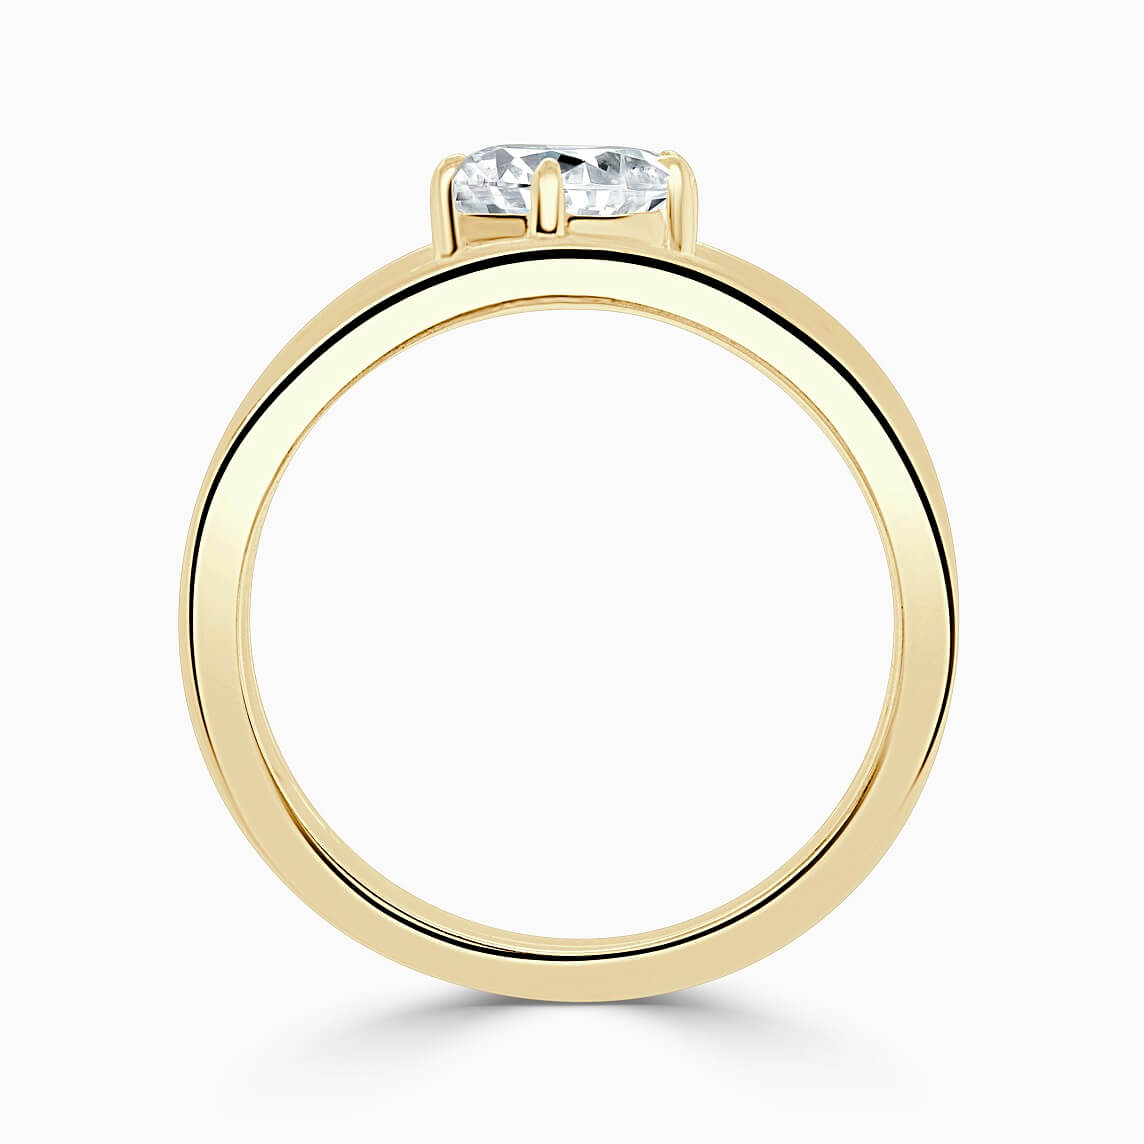 18ct Yellow Gold Pear Shape 6 Claw With Double Band Engagement Ring